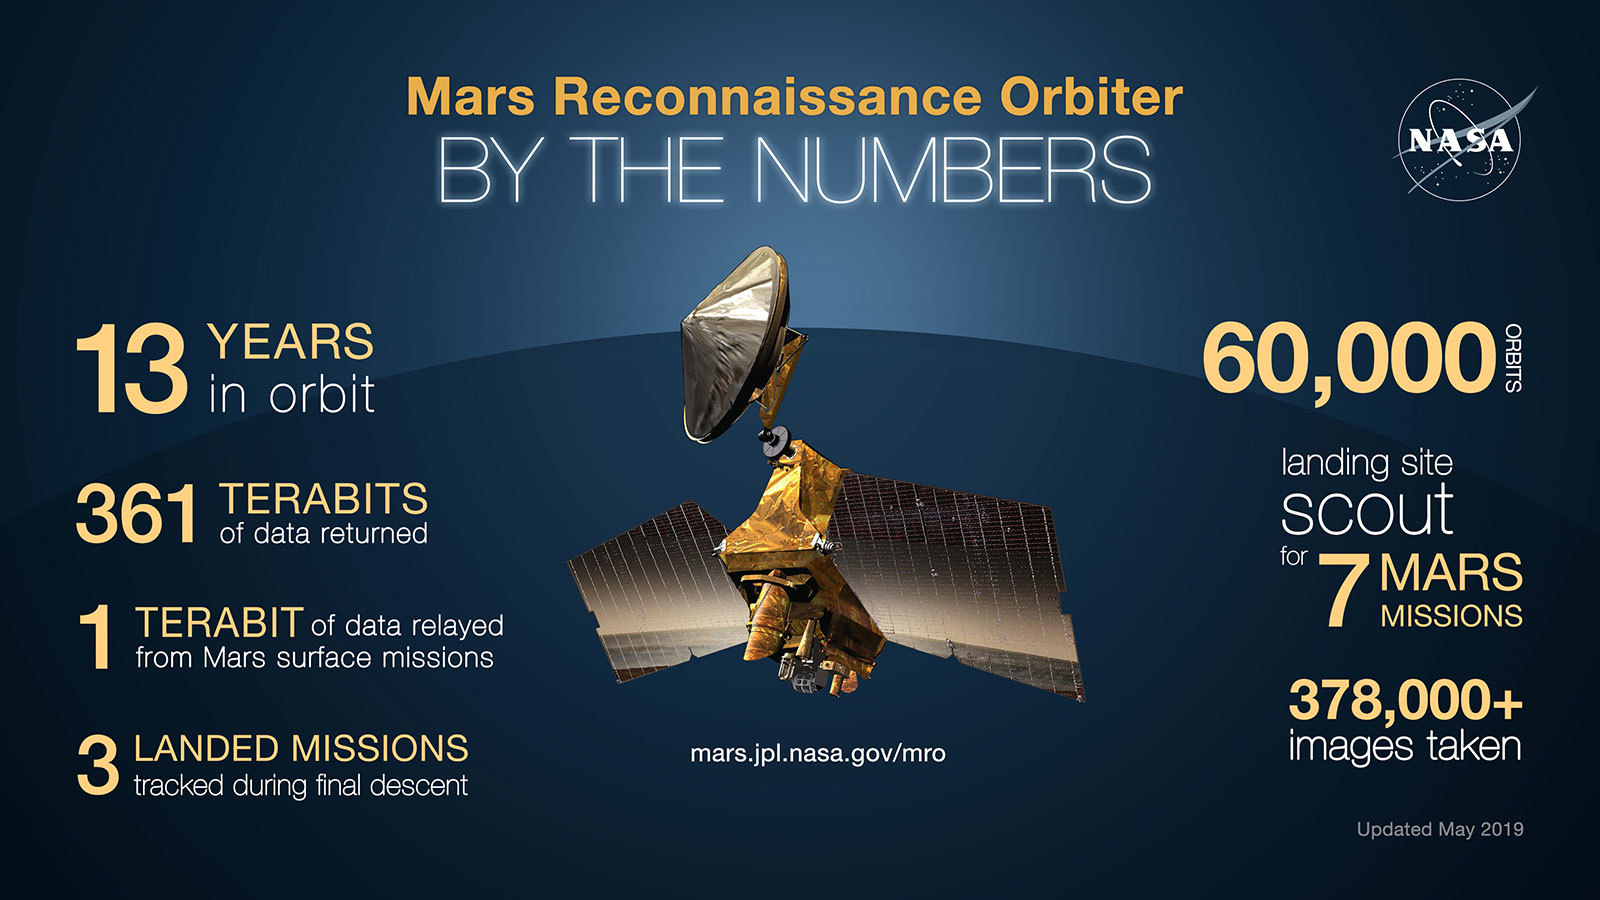 Graphic showing statistics related to Mars Reconnaissance Orbiter.